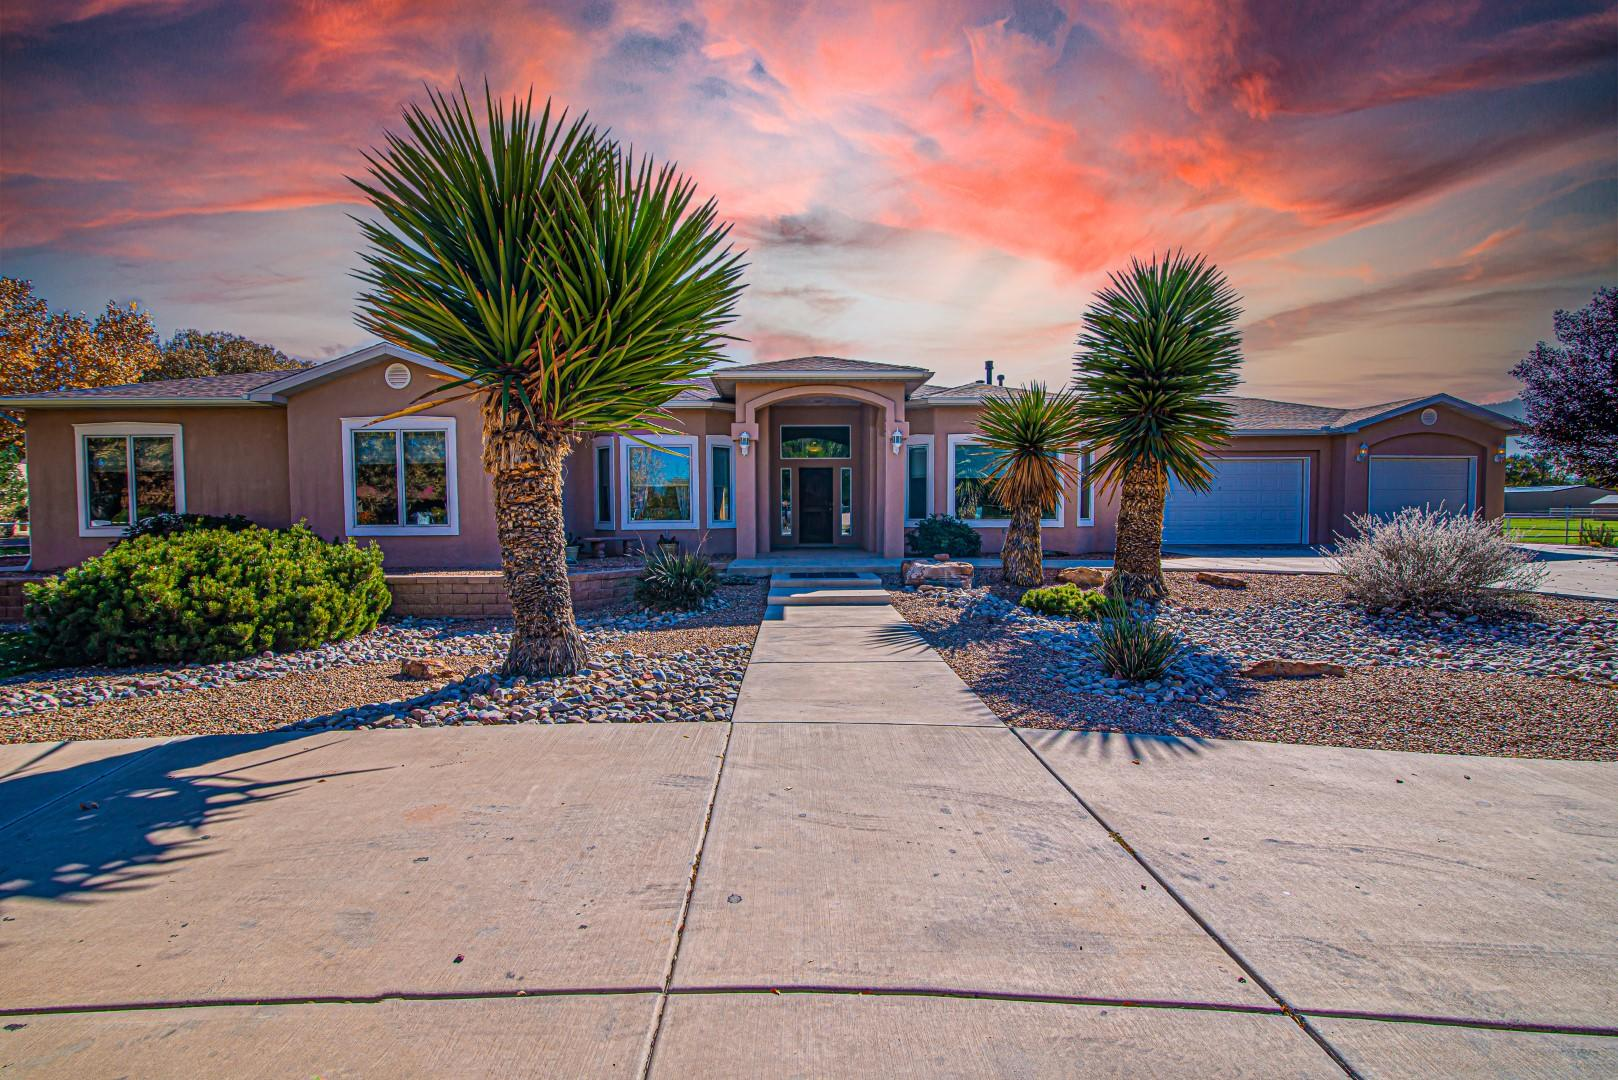 Beautiful custom home on 2 irrigated acres in Bosque Farms!  This home offers 4098 sq ft, 3 bedrooms, 2 full +3/4 +1/2 baths (total 4)  plus a game room with a wet bar, and a workout room/office.  Central vac system, radiant heat, 2 hot water heaters, 2 refrigerated air units.  Huge family room with cathedral ceilings.  Covered patio is 964 sq ft across the entire back of the home and opens onto beautiful yard with in-ground heated swimming pool.  Yard is beautifully landscaped and on sprinklers with a gazebo w/half bath for relaxing by the pool.  3-car attached garage plus a 3-car RV garage/workshop & attached carport.  City water, City sewer & irrigation well.  Bring your animals and your toys and come to the peace & quiet of Bosque Farms.  Easy access to I-25 and minutes to Albuquerque.